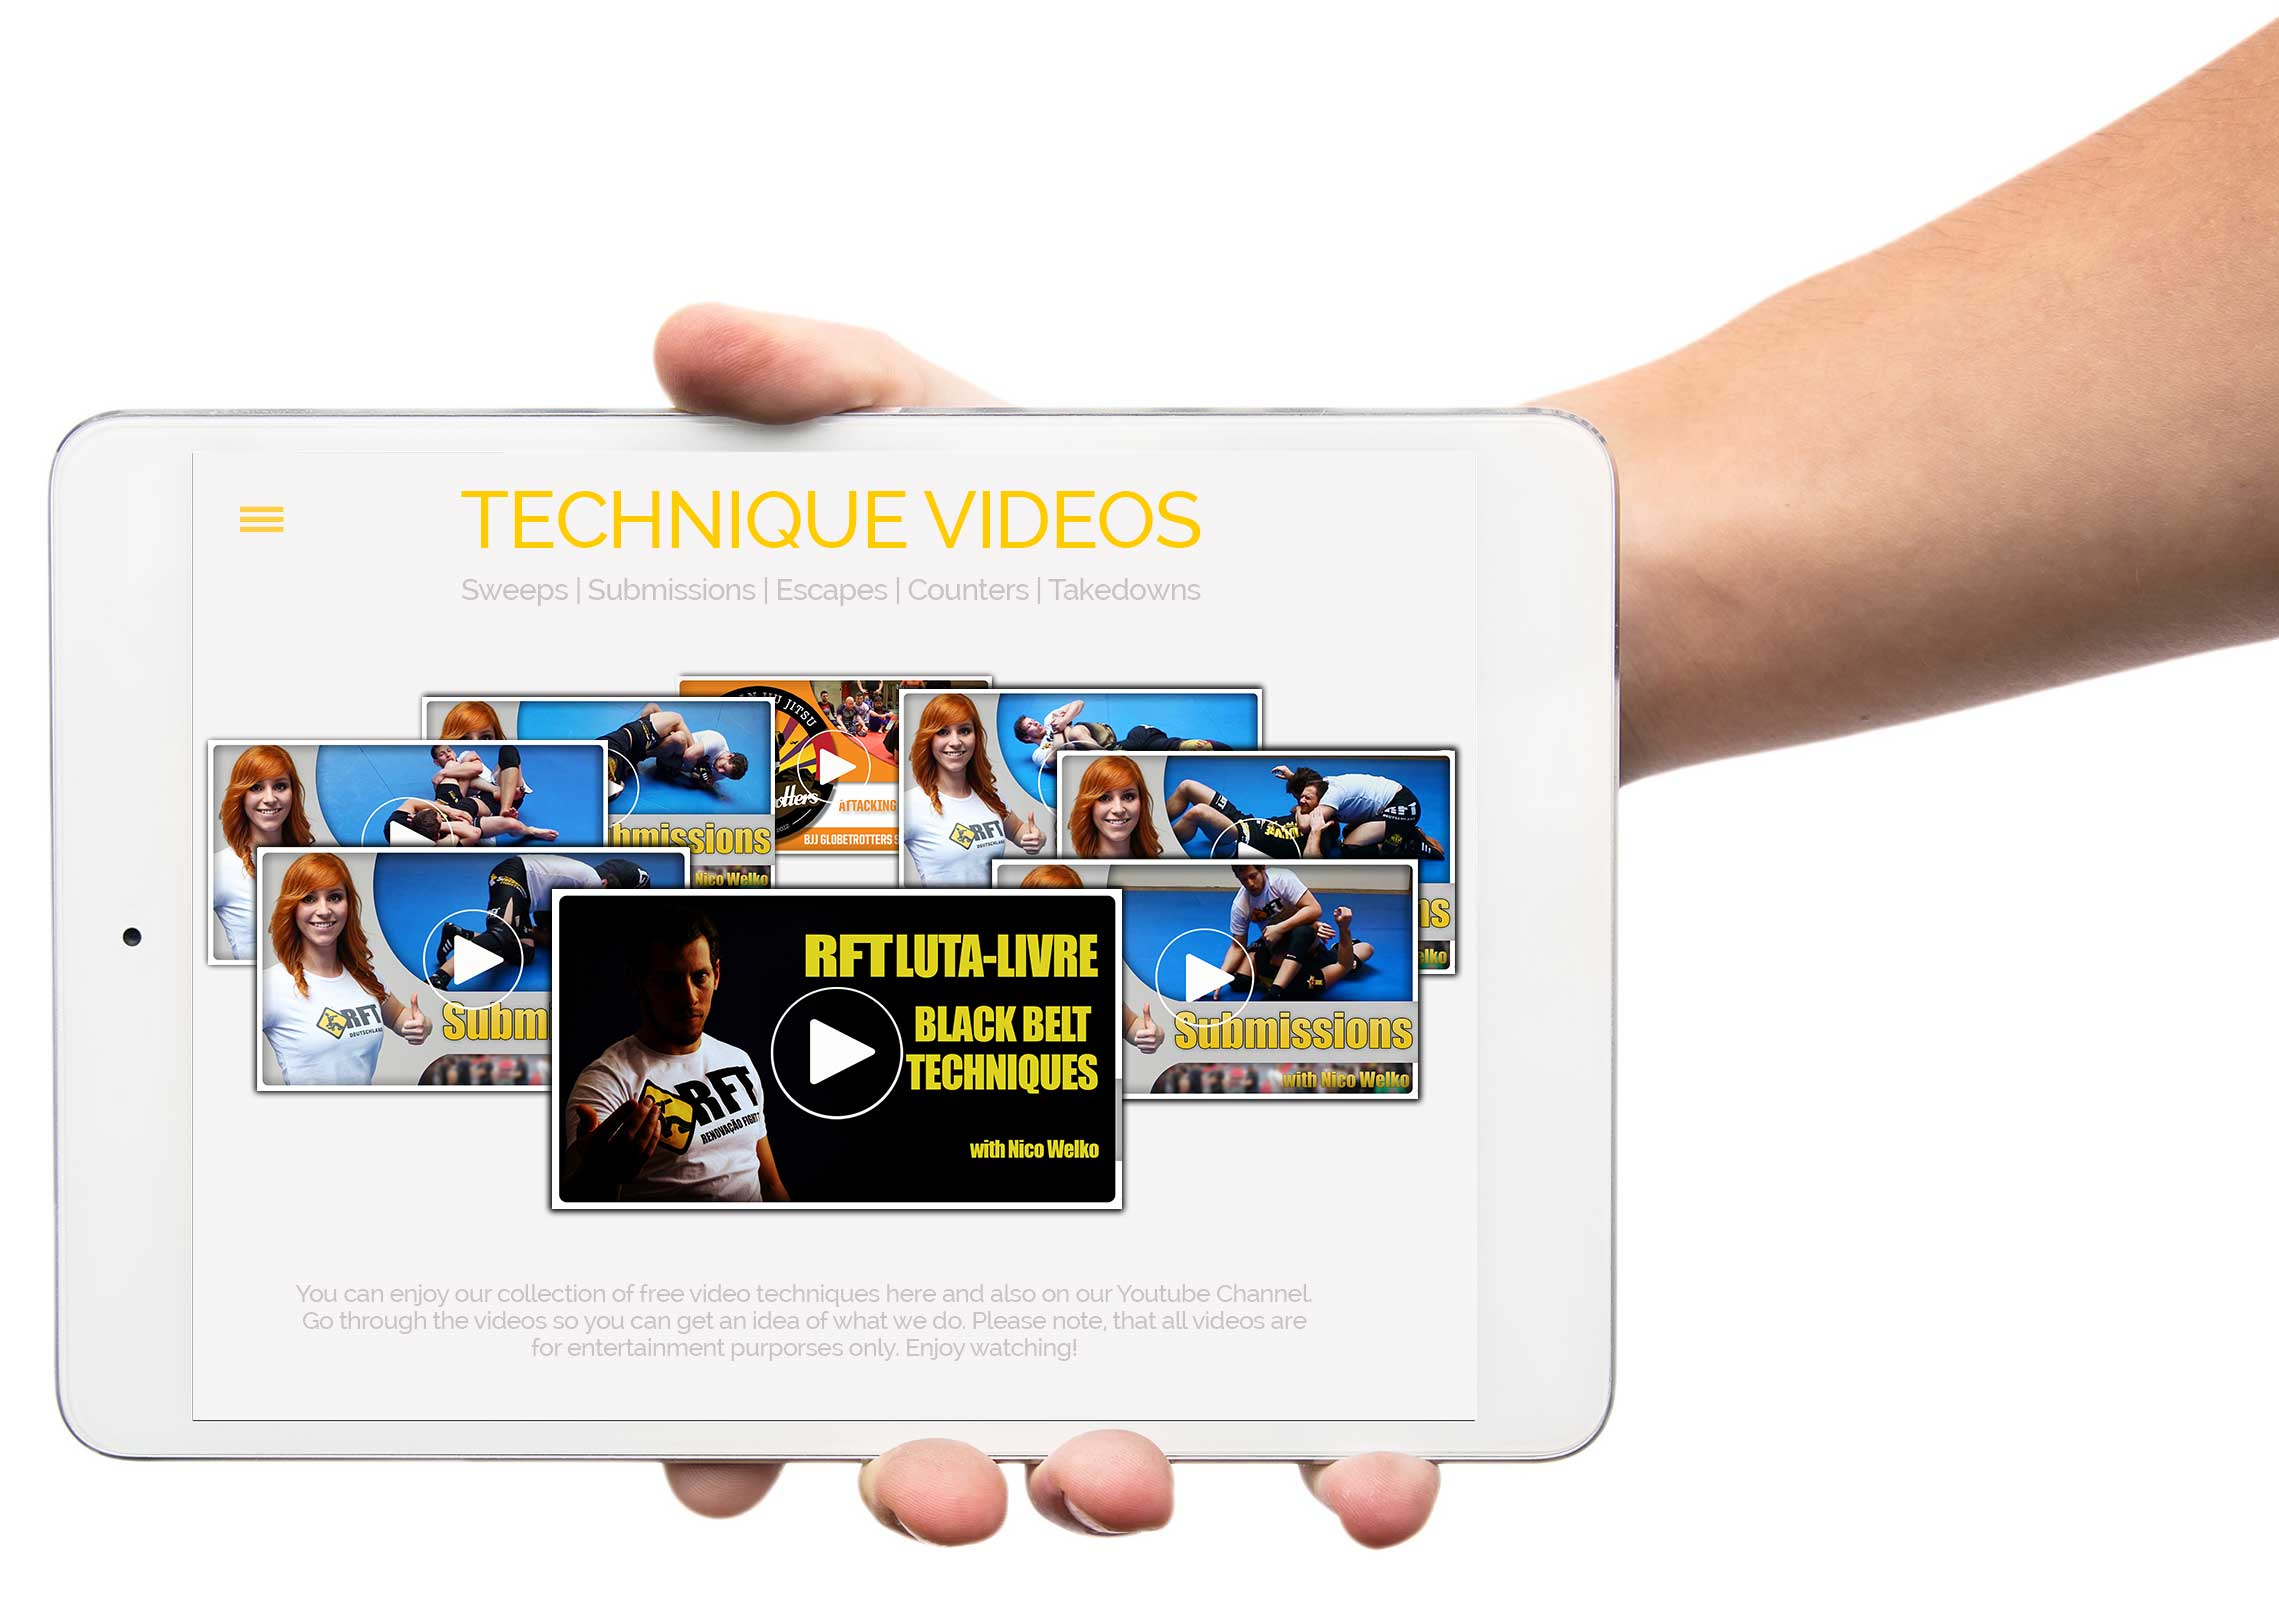 nico-welko-luta-livre-rft-watch-video-techniques-tablet-3